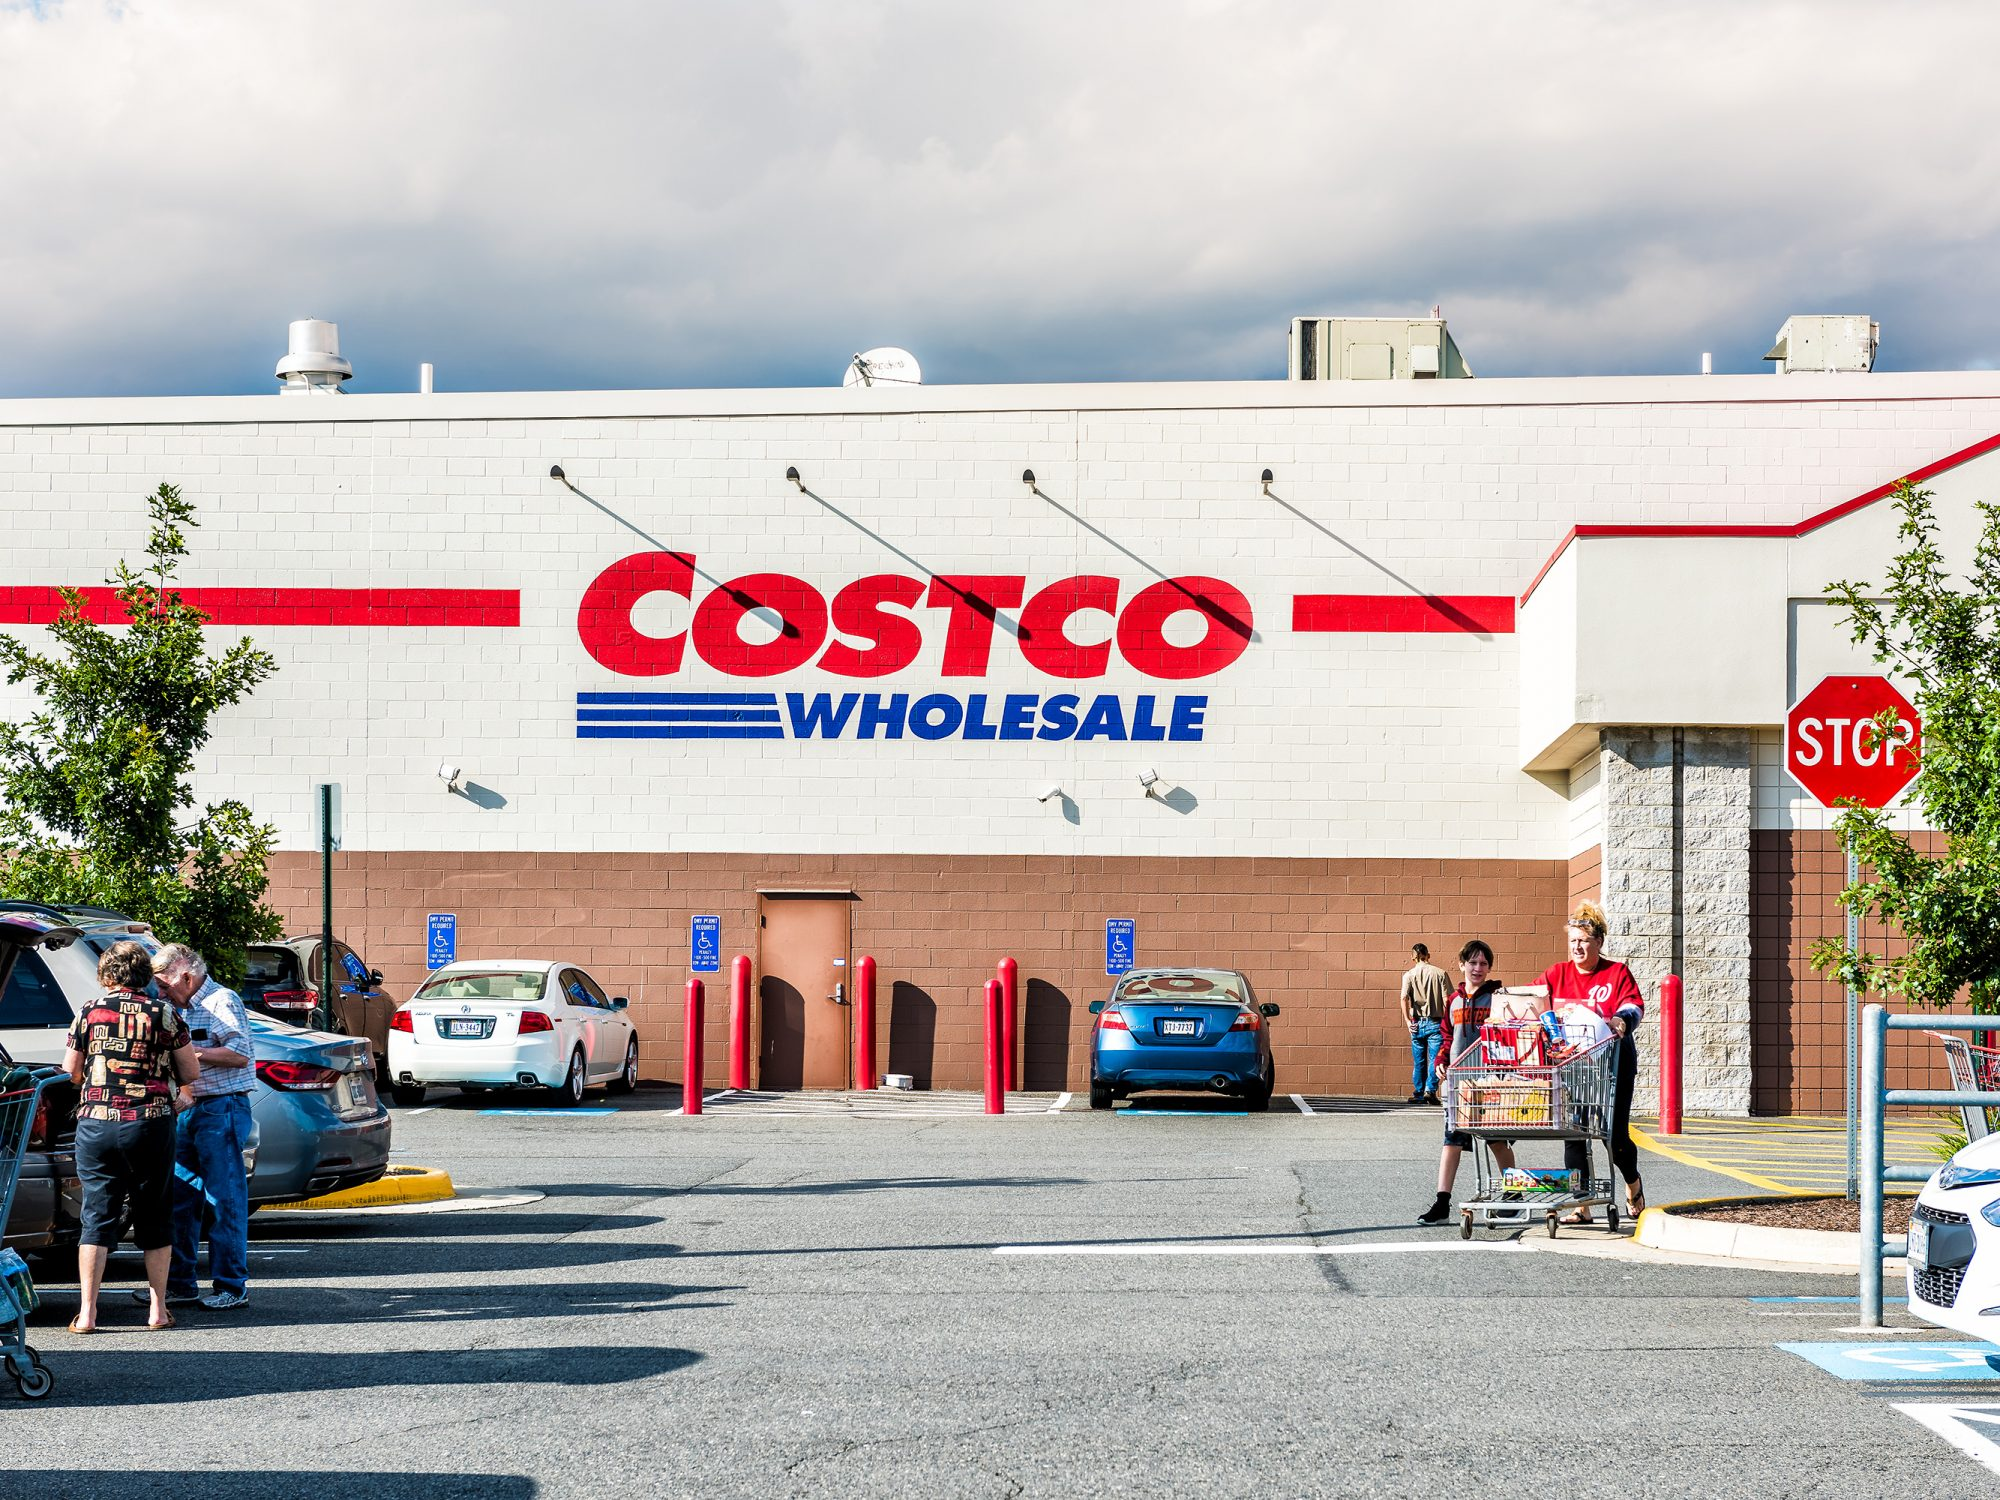 The Best Costco Membership Perk Has Nothing to Do With Cheap Groceries